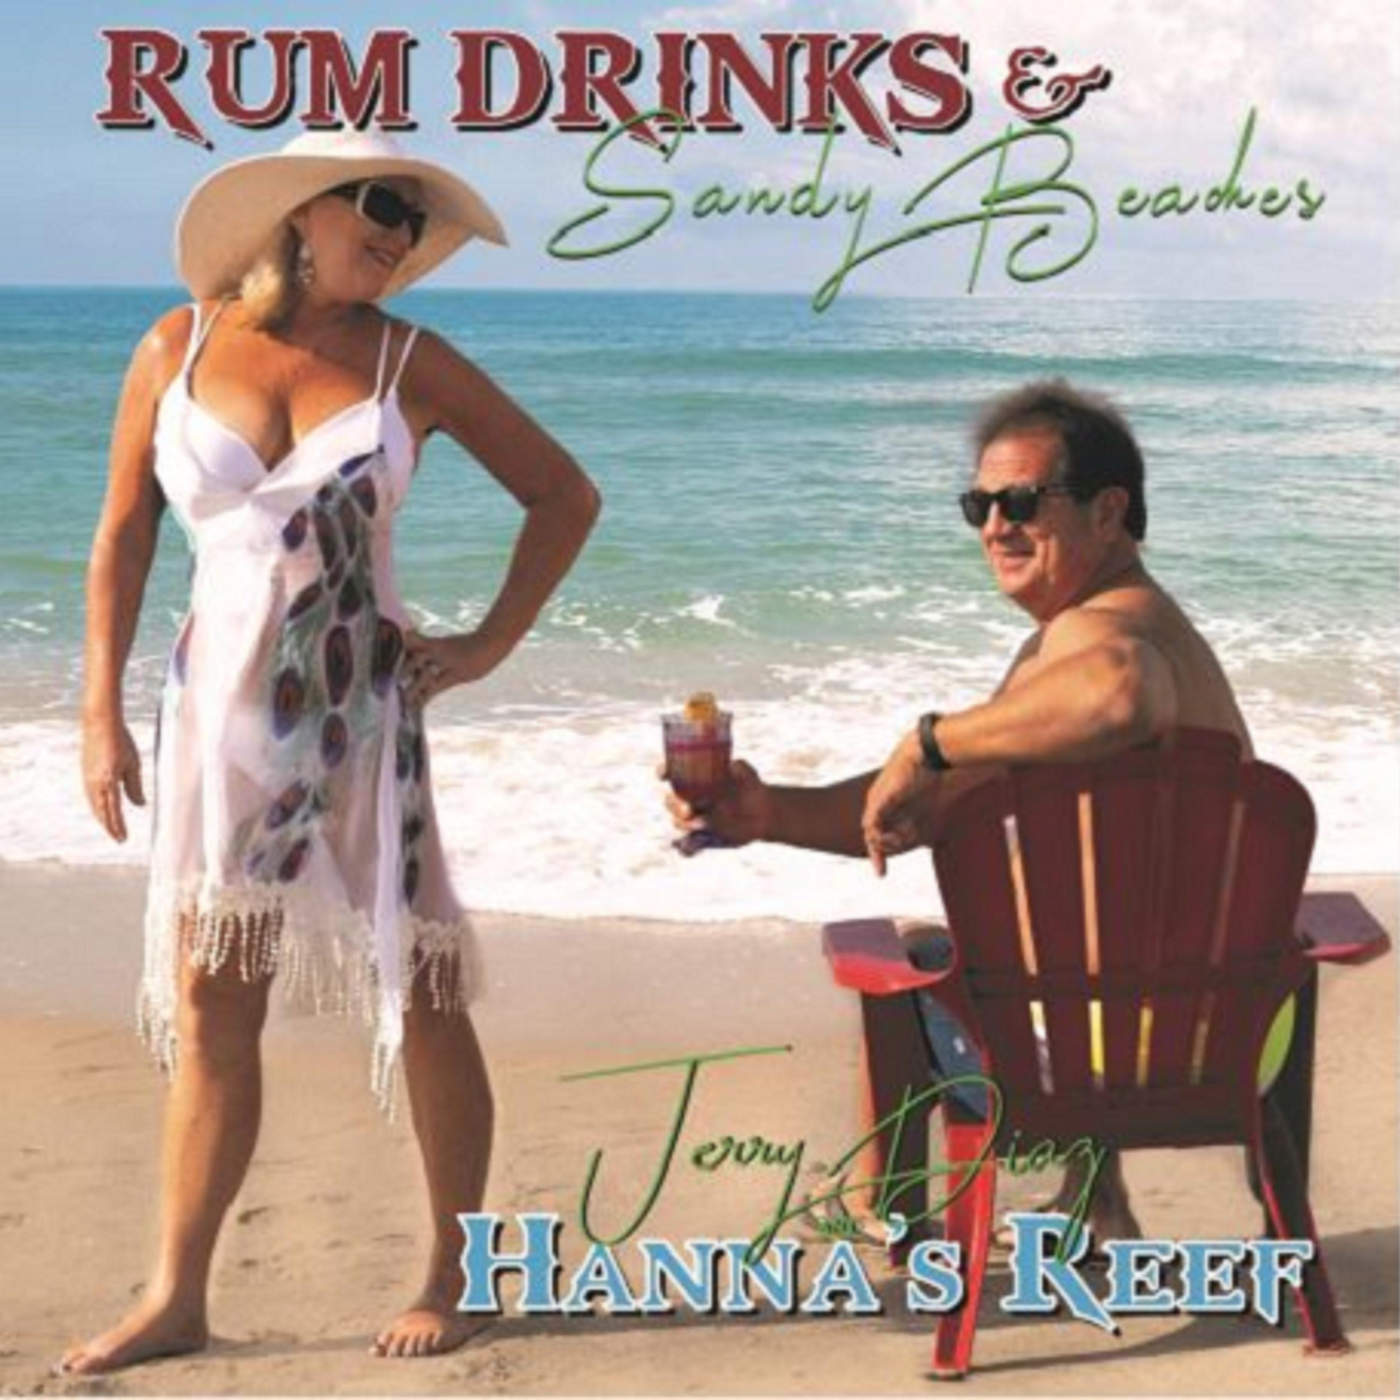 Art for Rum Drinks & Sandy Beaches by Jerry Diaz & Hanna's Reef